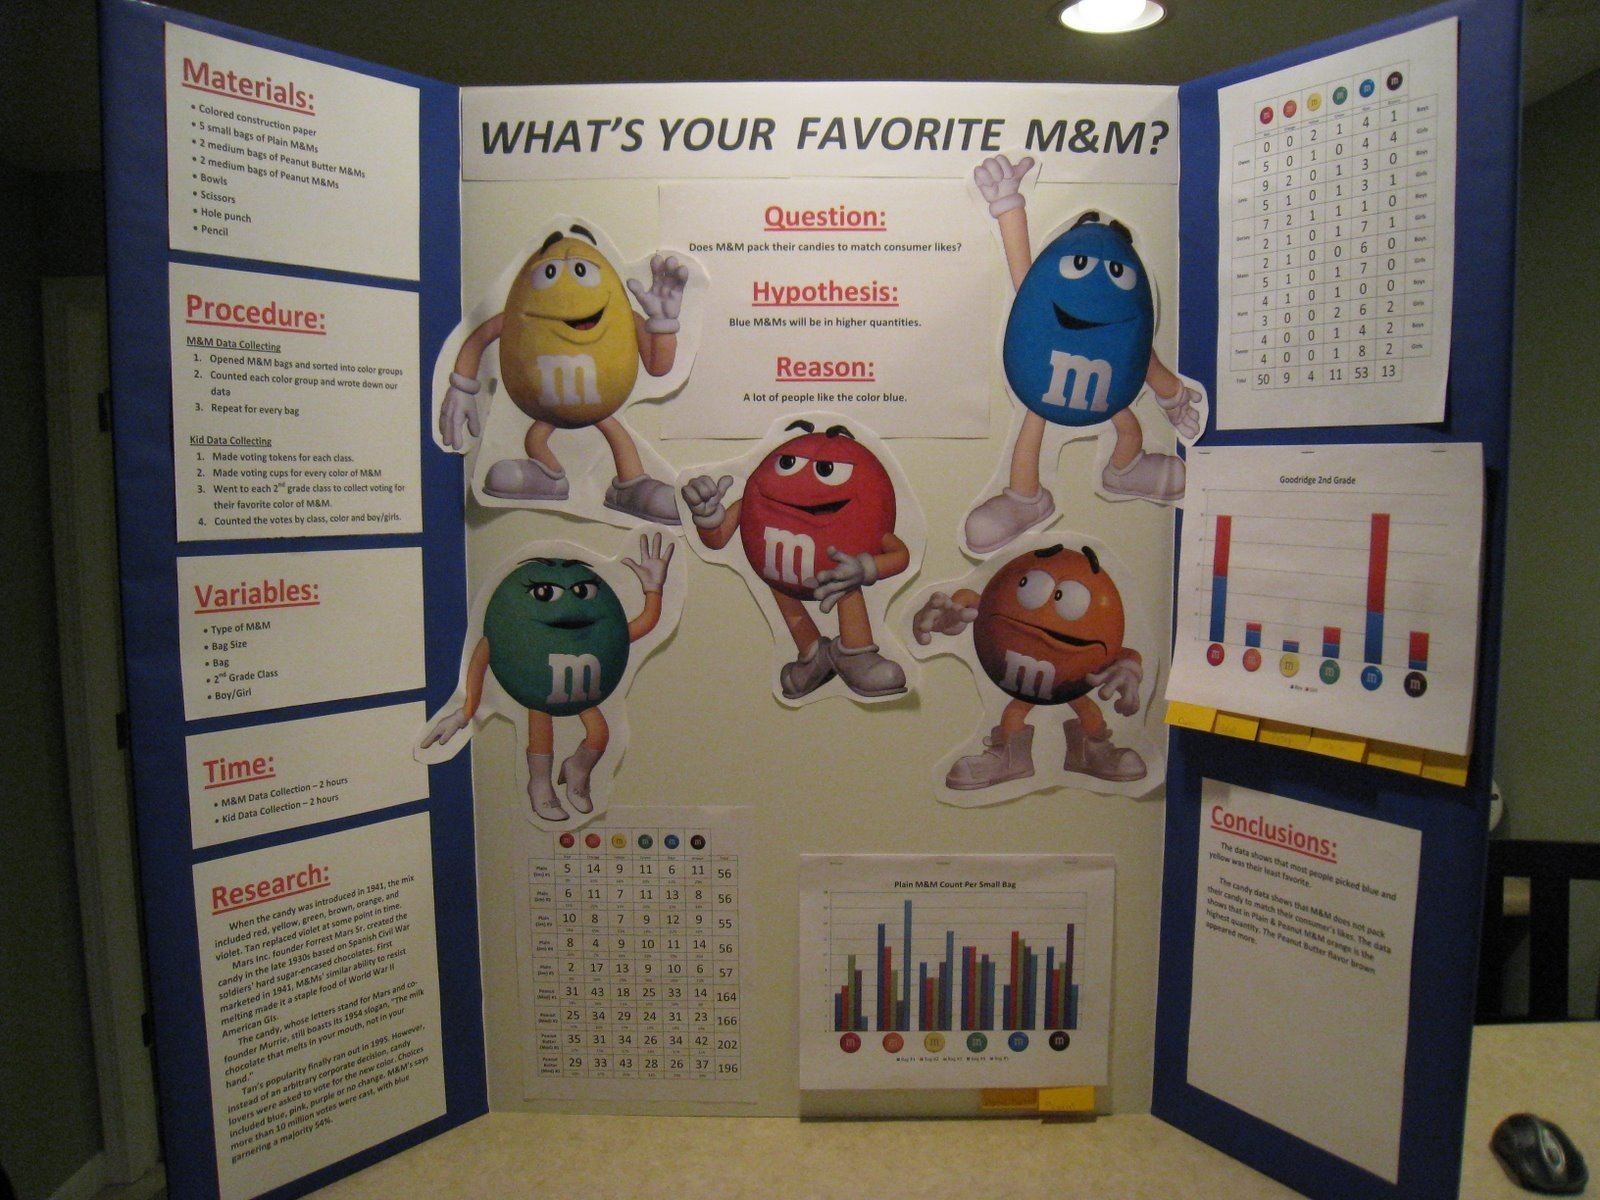 10 Attractive Science Fair Project Ideas For 3Rd Grade scince project neuer monoberlin co